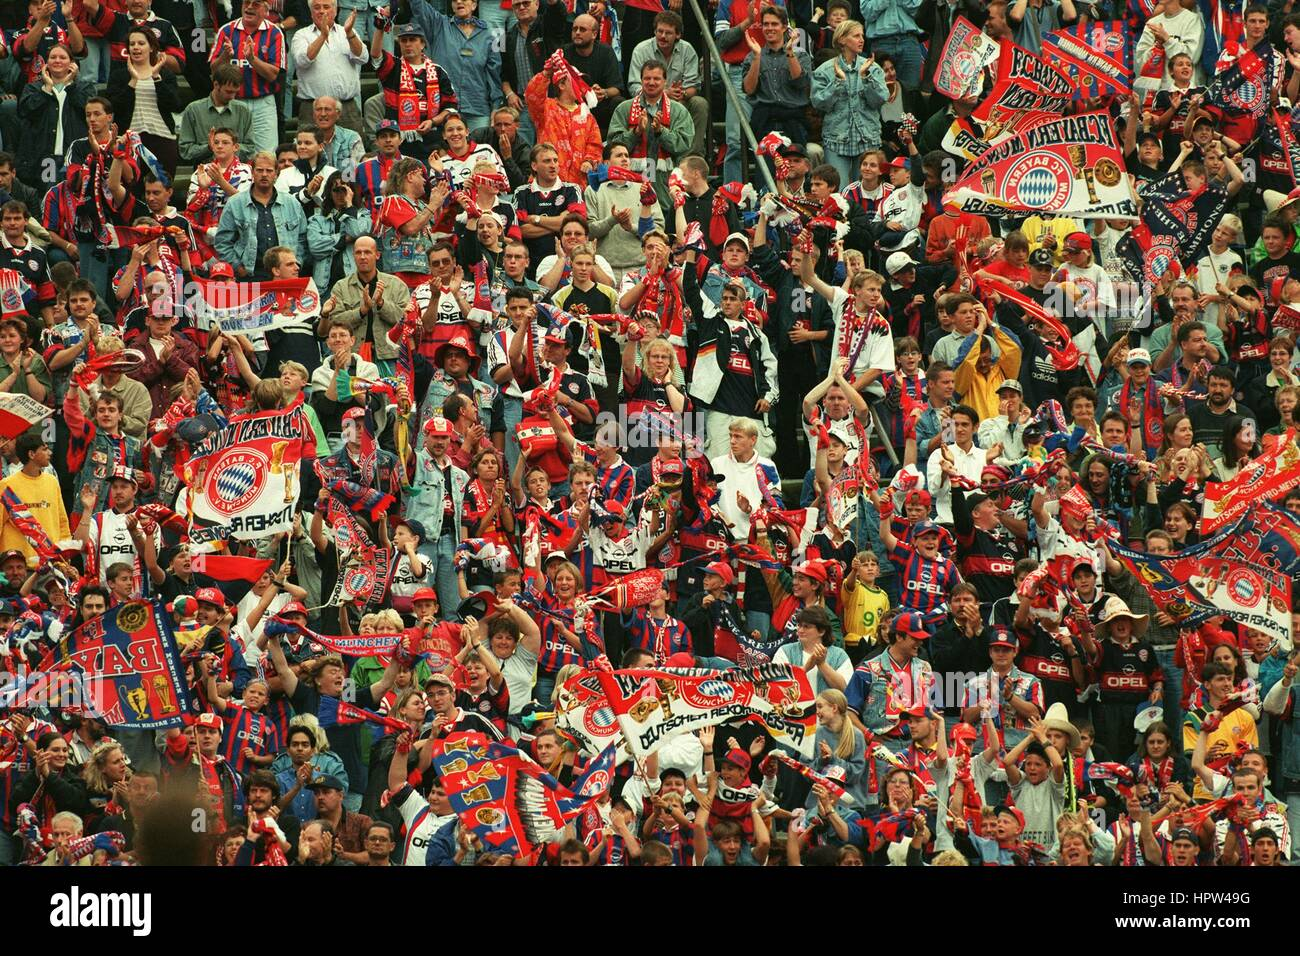 FC BAYERN MUNCHEN FANS 26 August 1998 - Stock Image